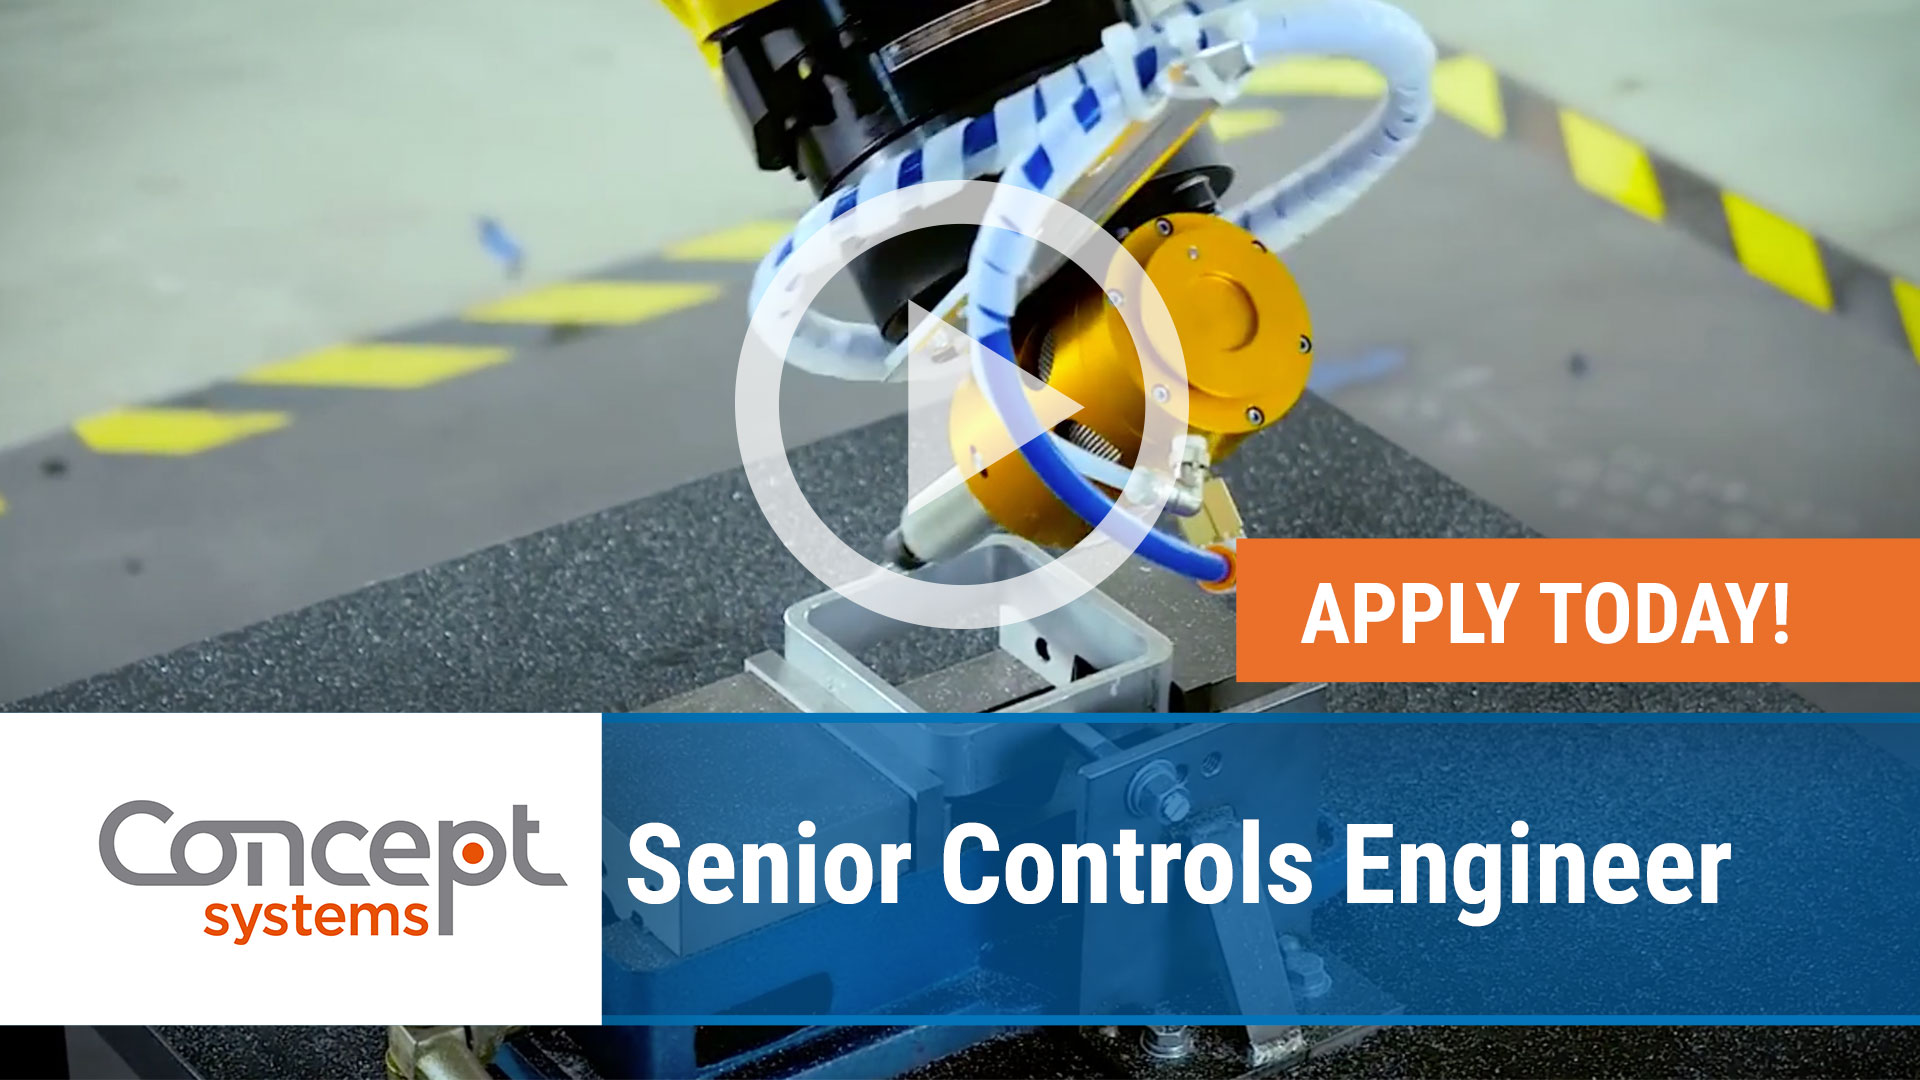 Watch our careers video for available job opening Senior Controls Engineer in Seattle, Washington